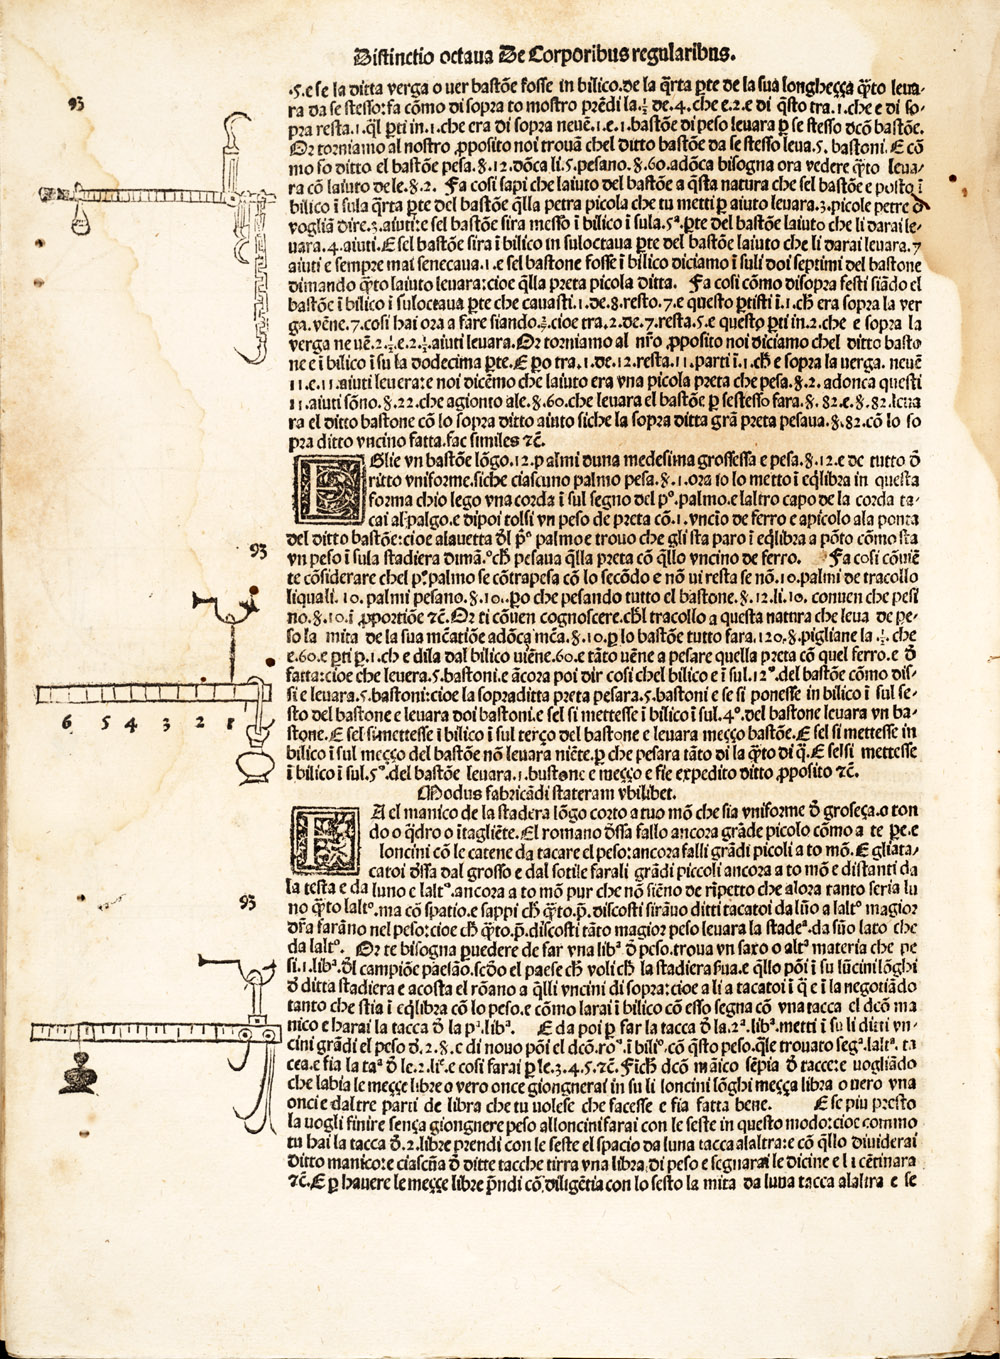 f67 - verso,  Image number:sil7-108-42a